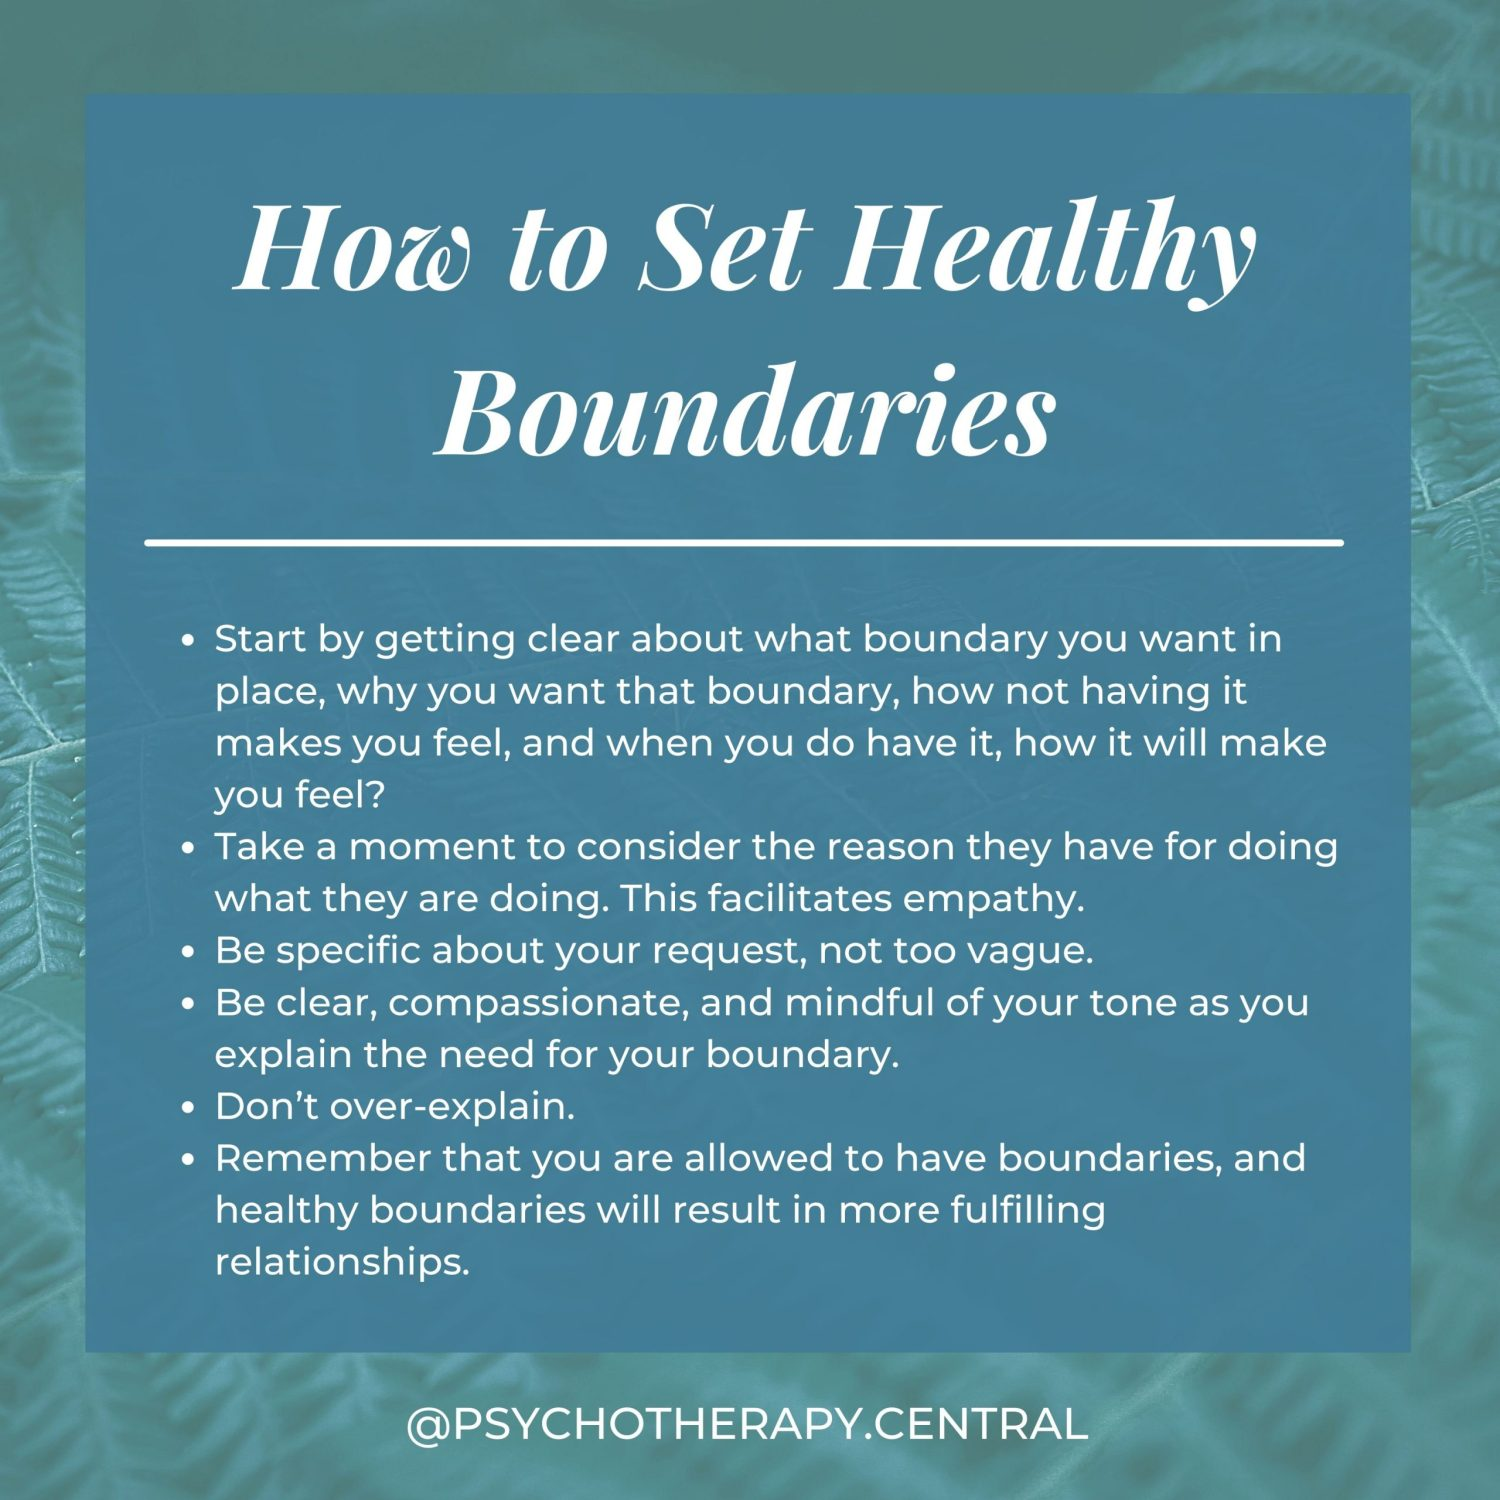 Start by getting clear about what boundary you want in place, why you want that boundary, how not having it makes you feel and when you do have it, how it will make you feel. Take a moment to consider the reason they have for doing what they are doing. Be specific about your request, not too vague. Be clear, compassionate, and mindful of your tone as you explain the need for your boundary. Don't over-explain. Remember that you are allowed to have boundaries, and healthy boundaries will result in more fulfilling relationships. It is normal for boundaries with parents to change as you get older.